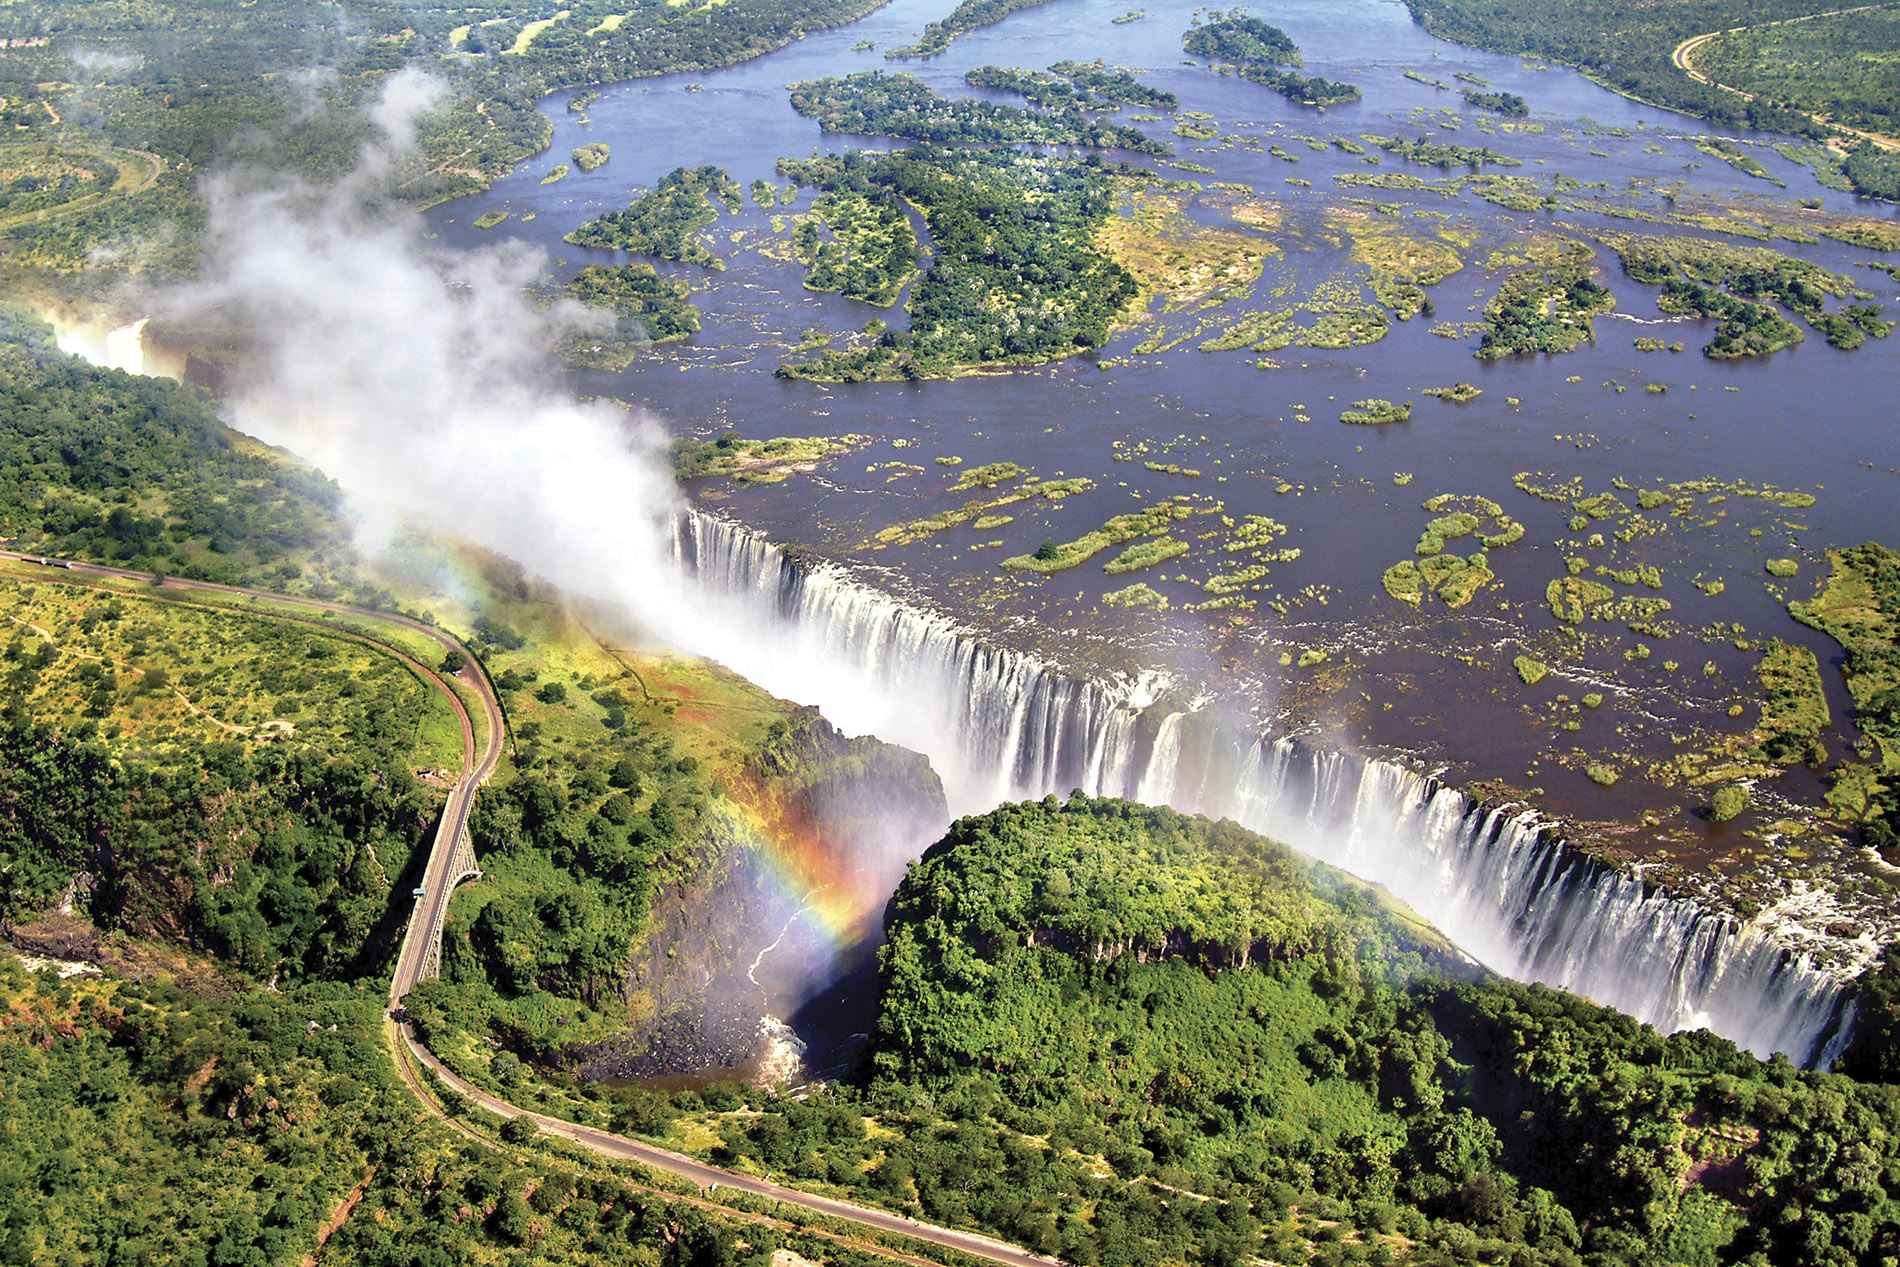 a large waterfall over some water with Victoria Falls in the background